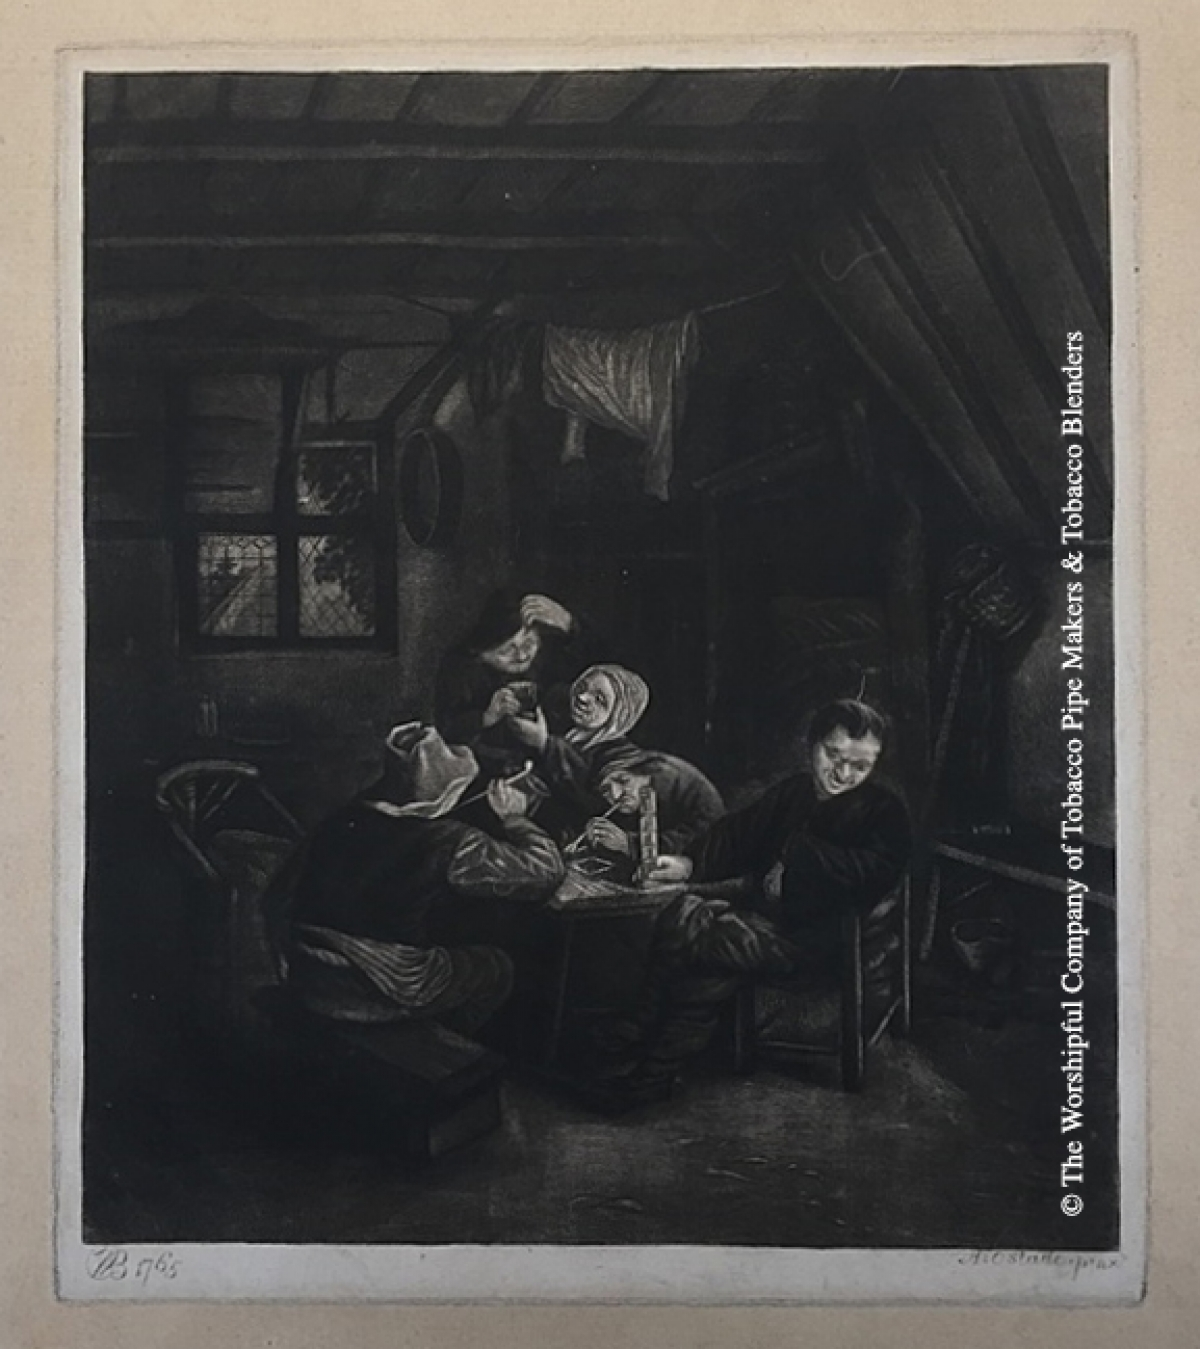 Group of people smoking and drinking